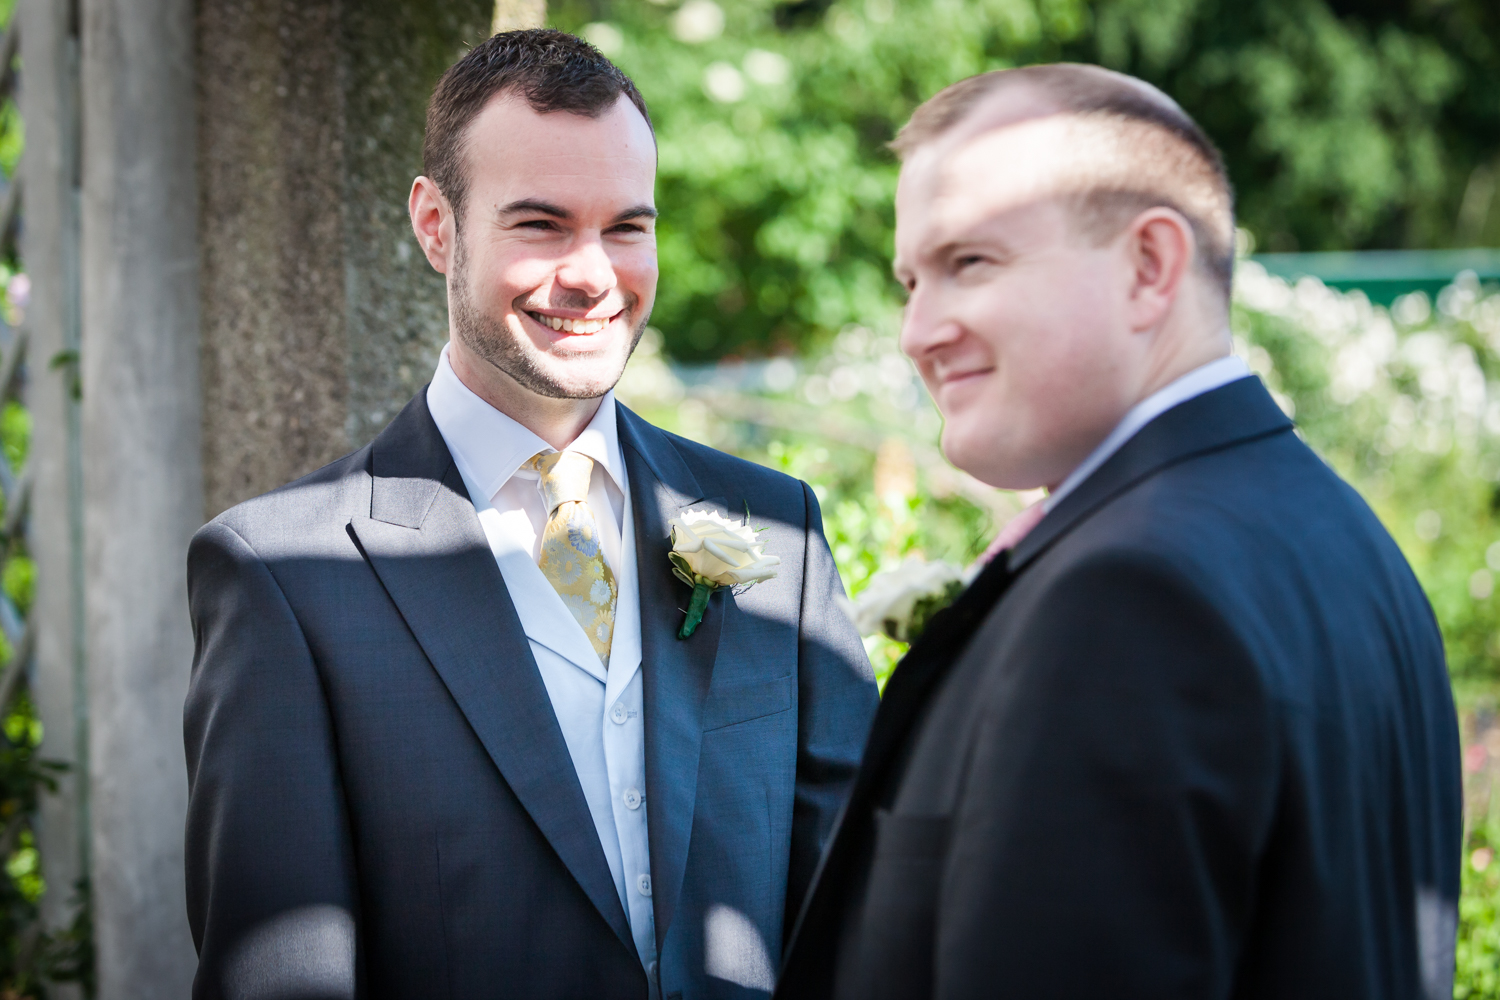 Two grooms exchanging vows at an Brooklyn Botanic Garden wedding